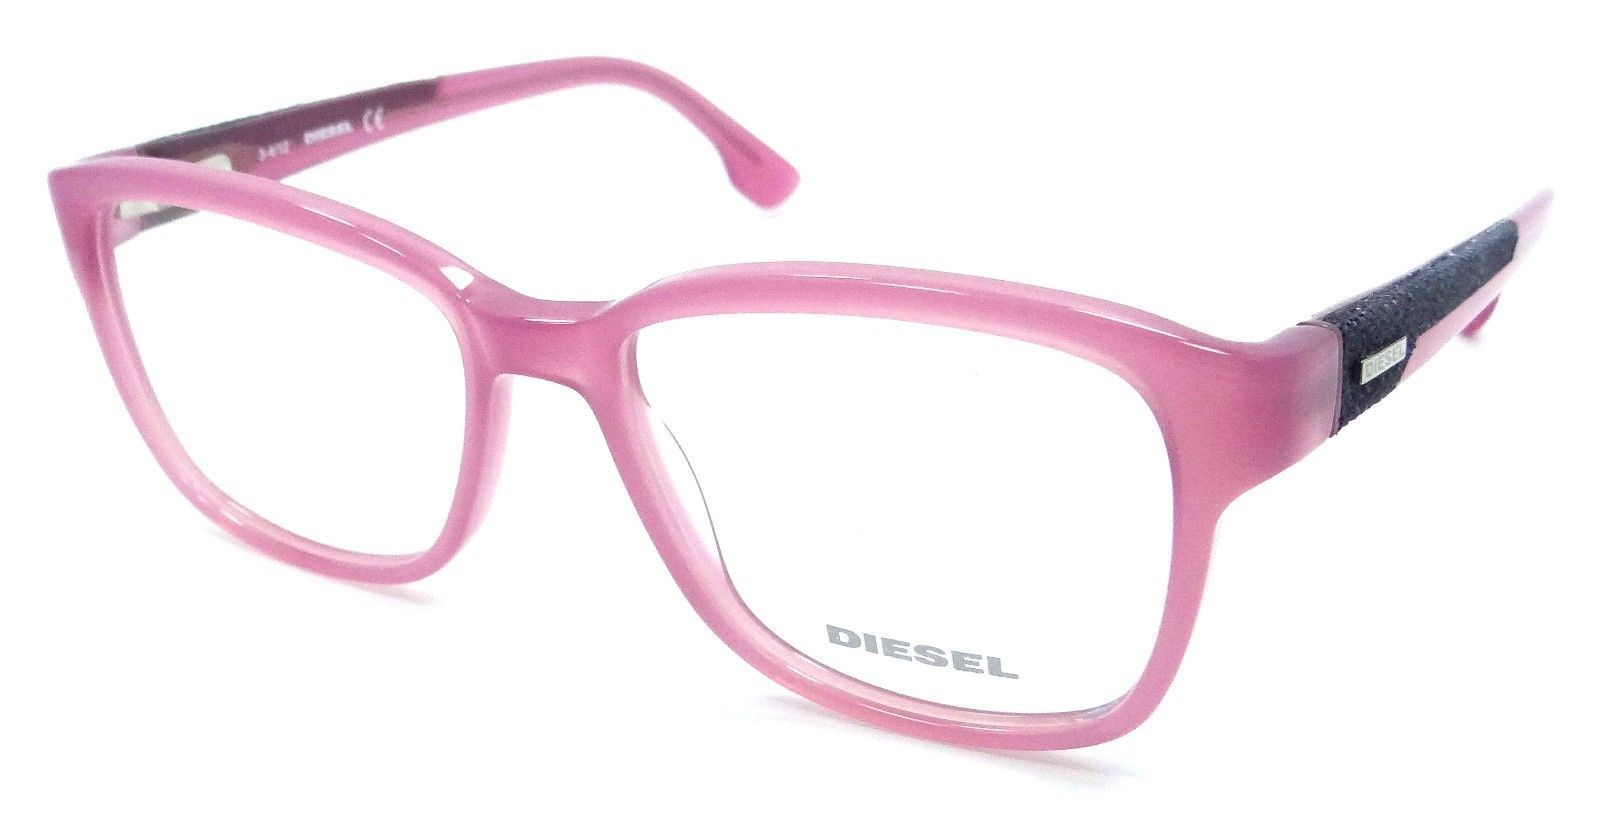 c405940f8744 New Authentic Diesel Rx Eyeglasses Frames and similar items. 57